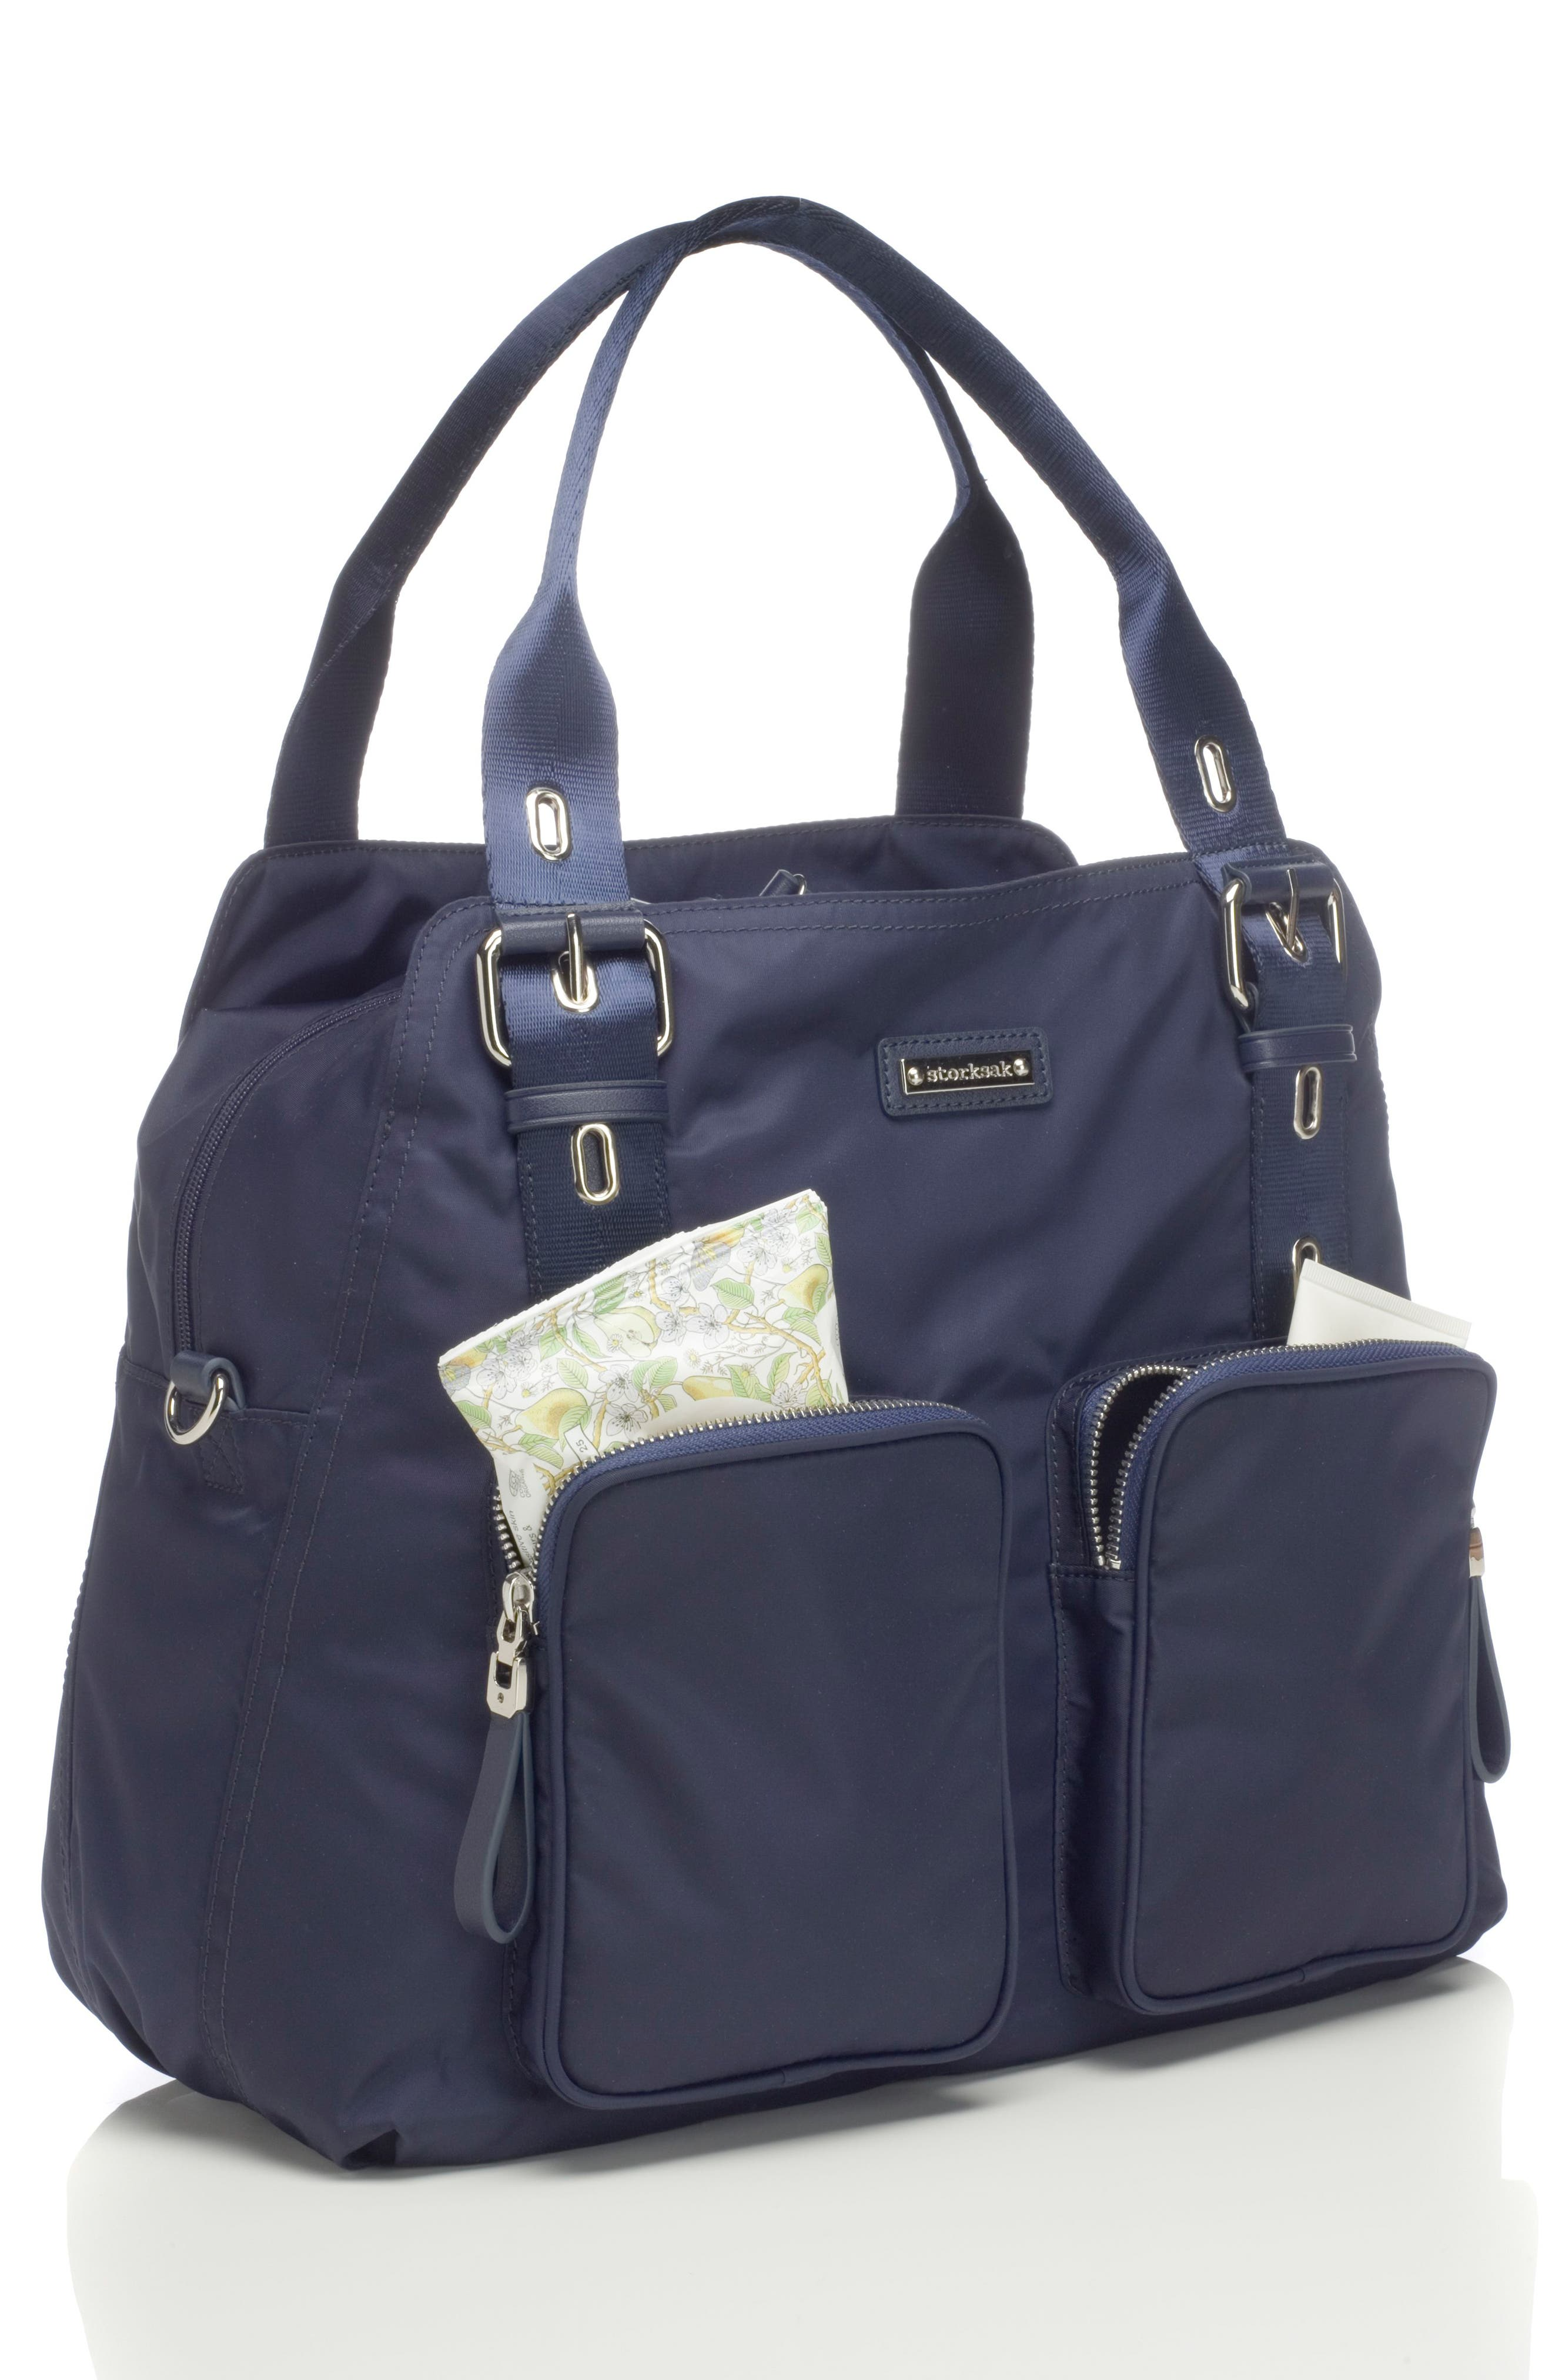 Storsak Alexa Diaper Bag,                             Alternate thumbnail 4, color,                             NAVY